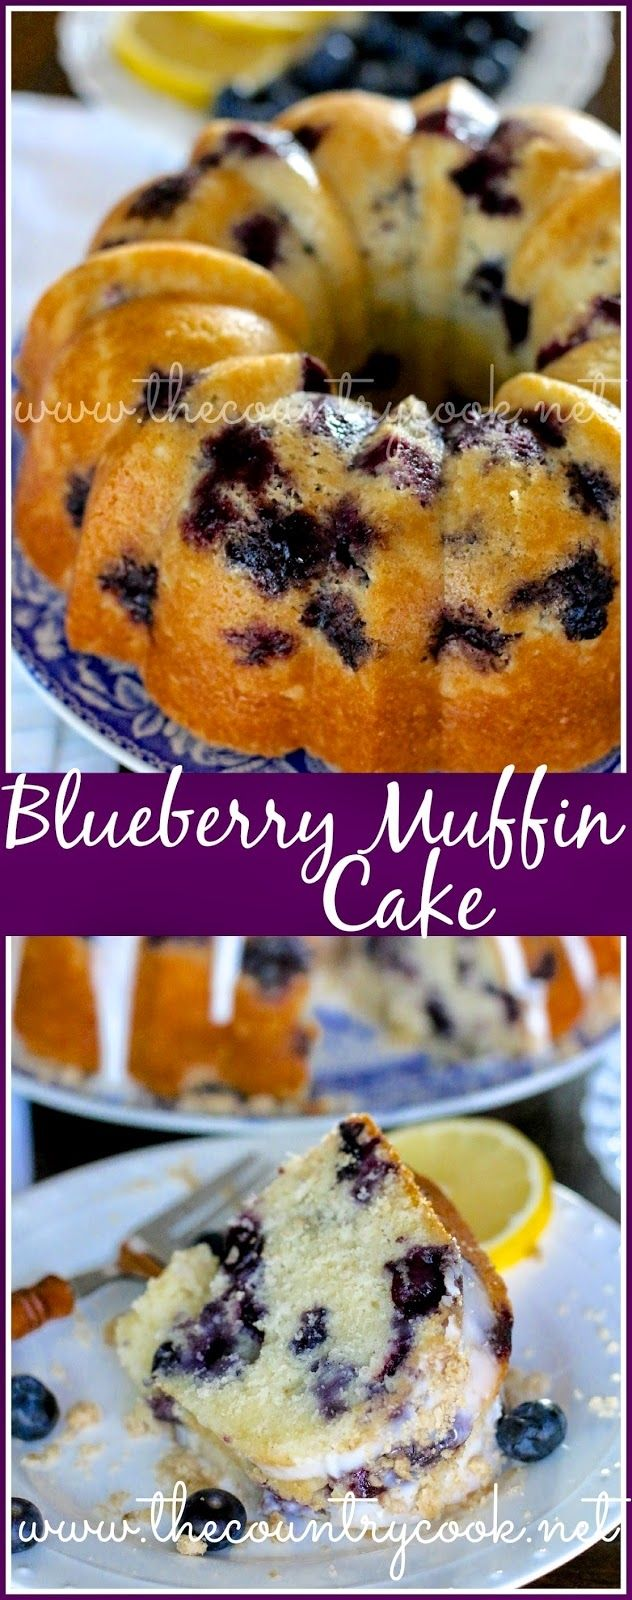 Blueberry Muffin Cake from The Country Cook. Homemade, moist cake filled with bursting blueberries all topped off with a touch of lemon flavored drizzled icing - YUM! Good Cake for holiday  #cupcake  #sweet